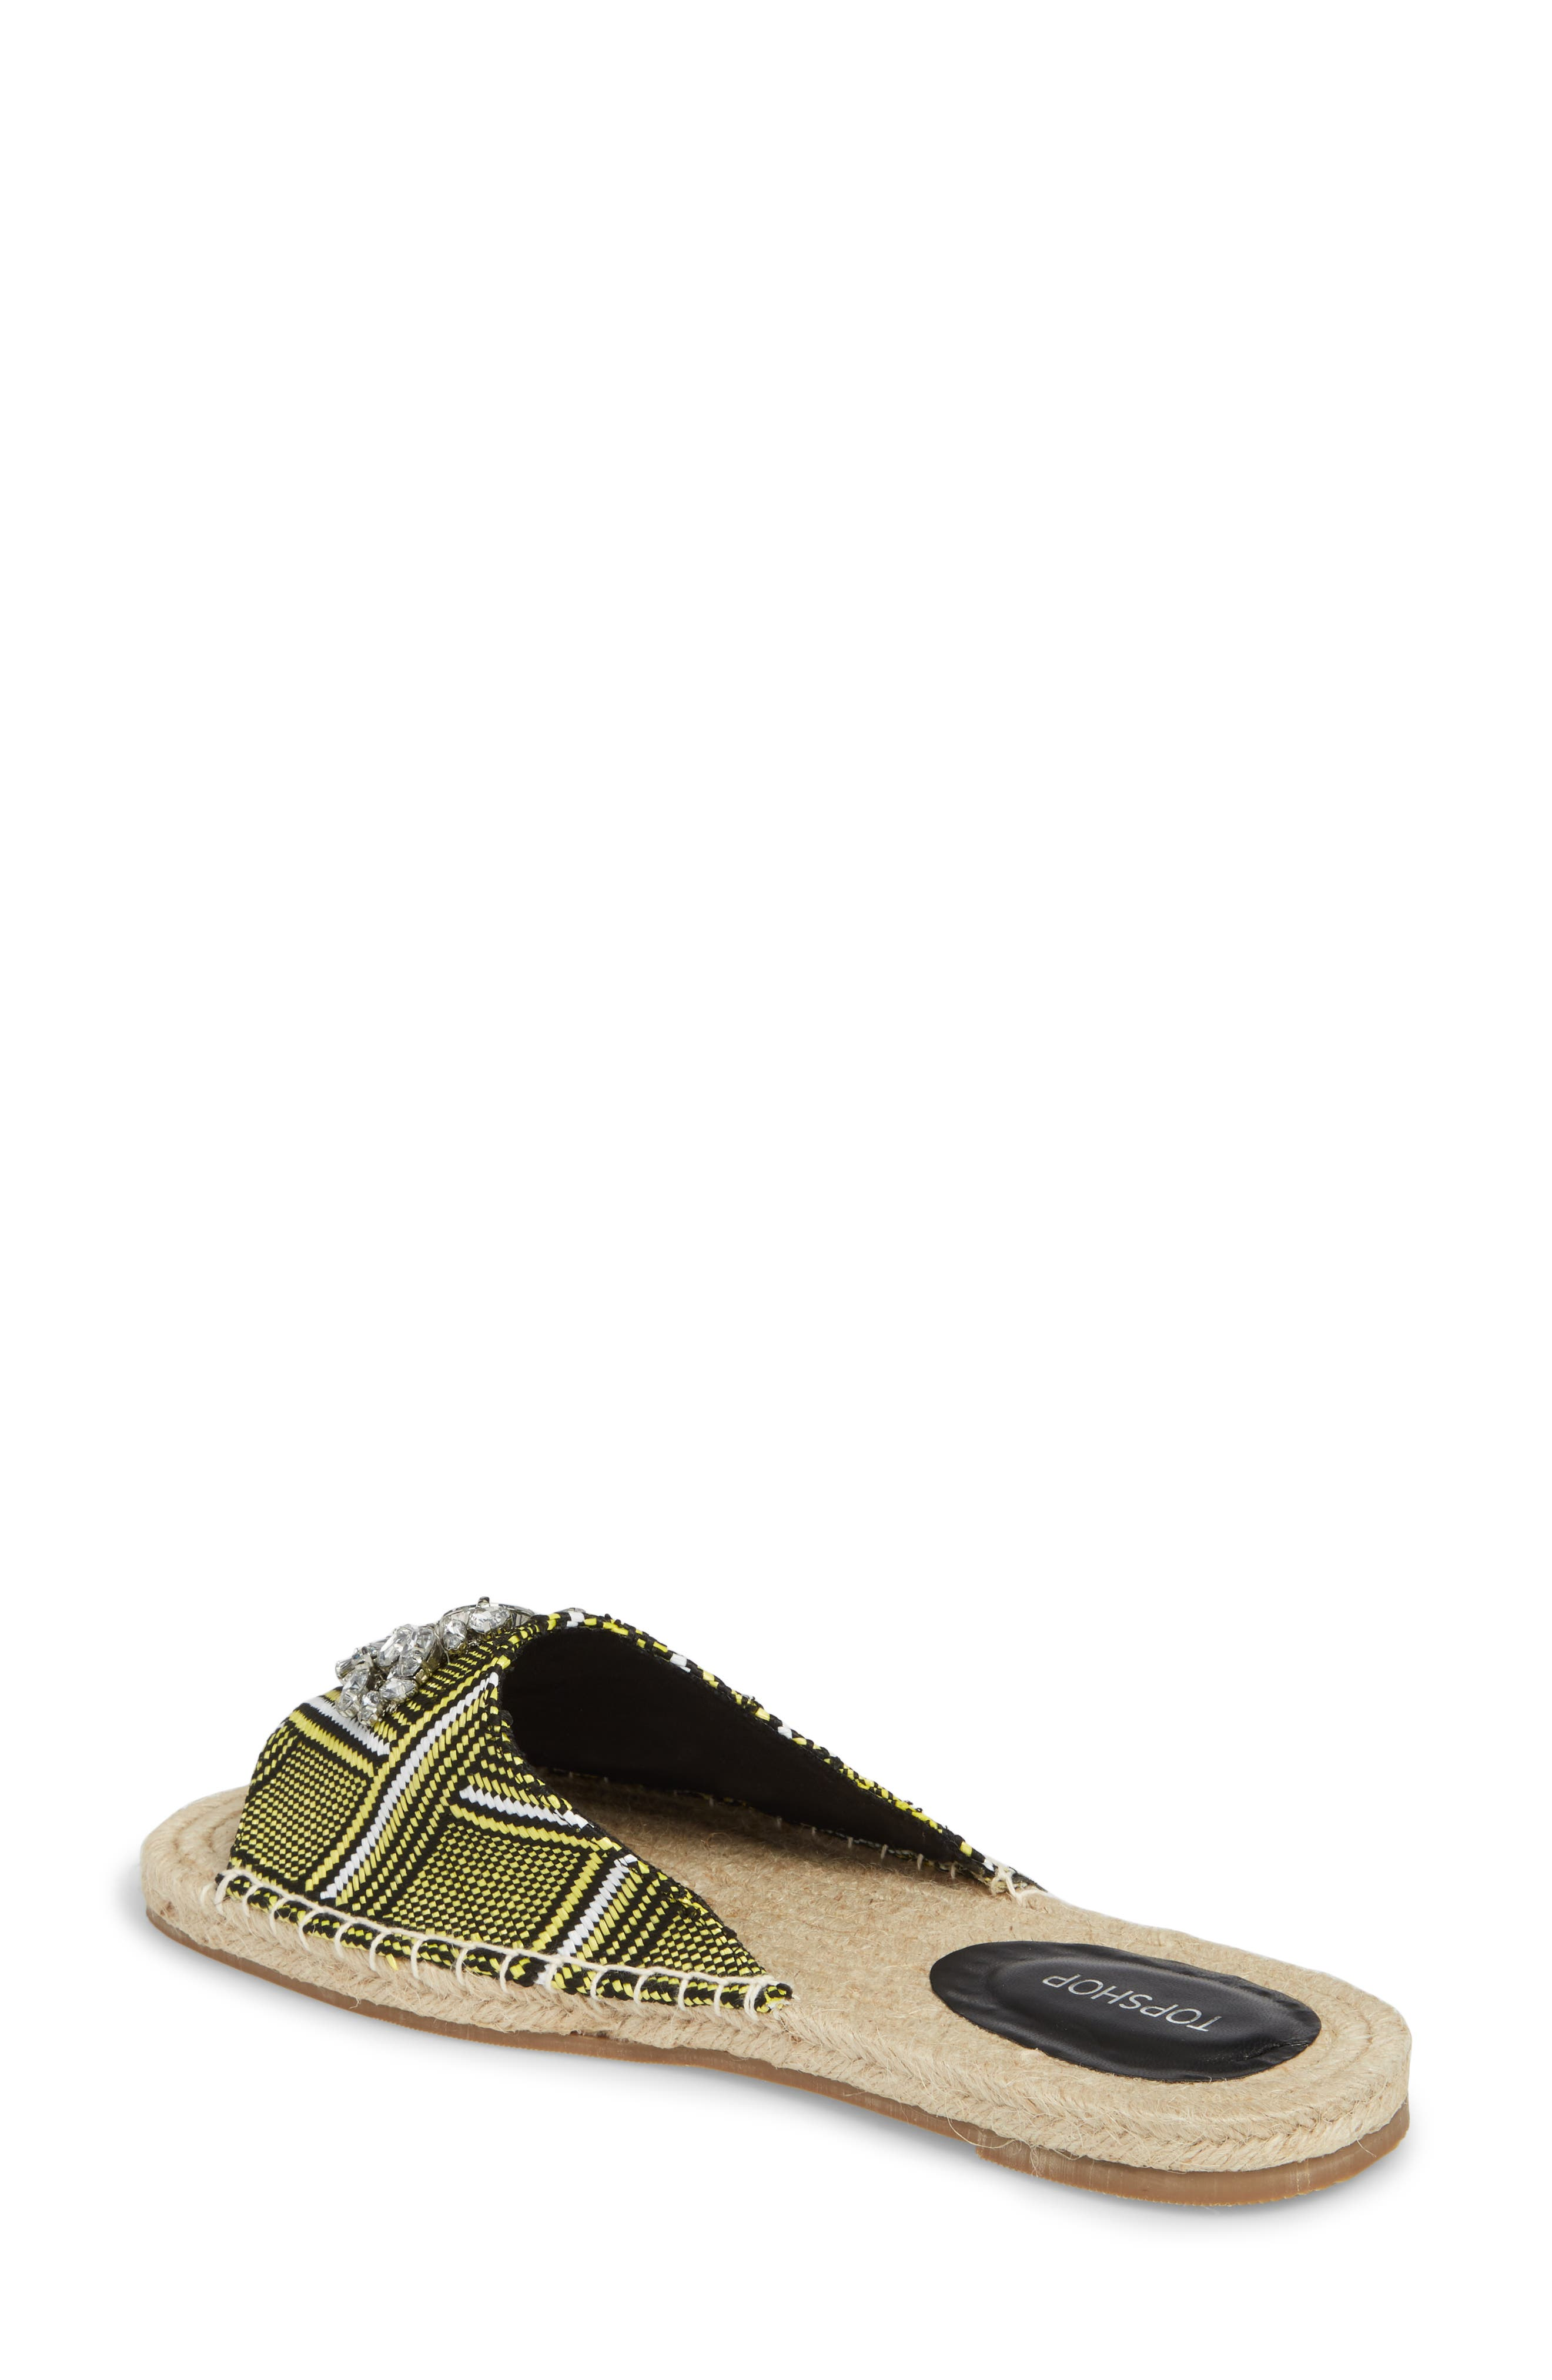 Hey Espadrille Square Slider Sandals,                             Alternate thumbnail 2, color,                             Yellow Multi